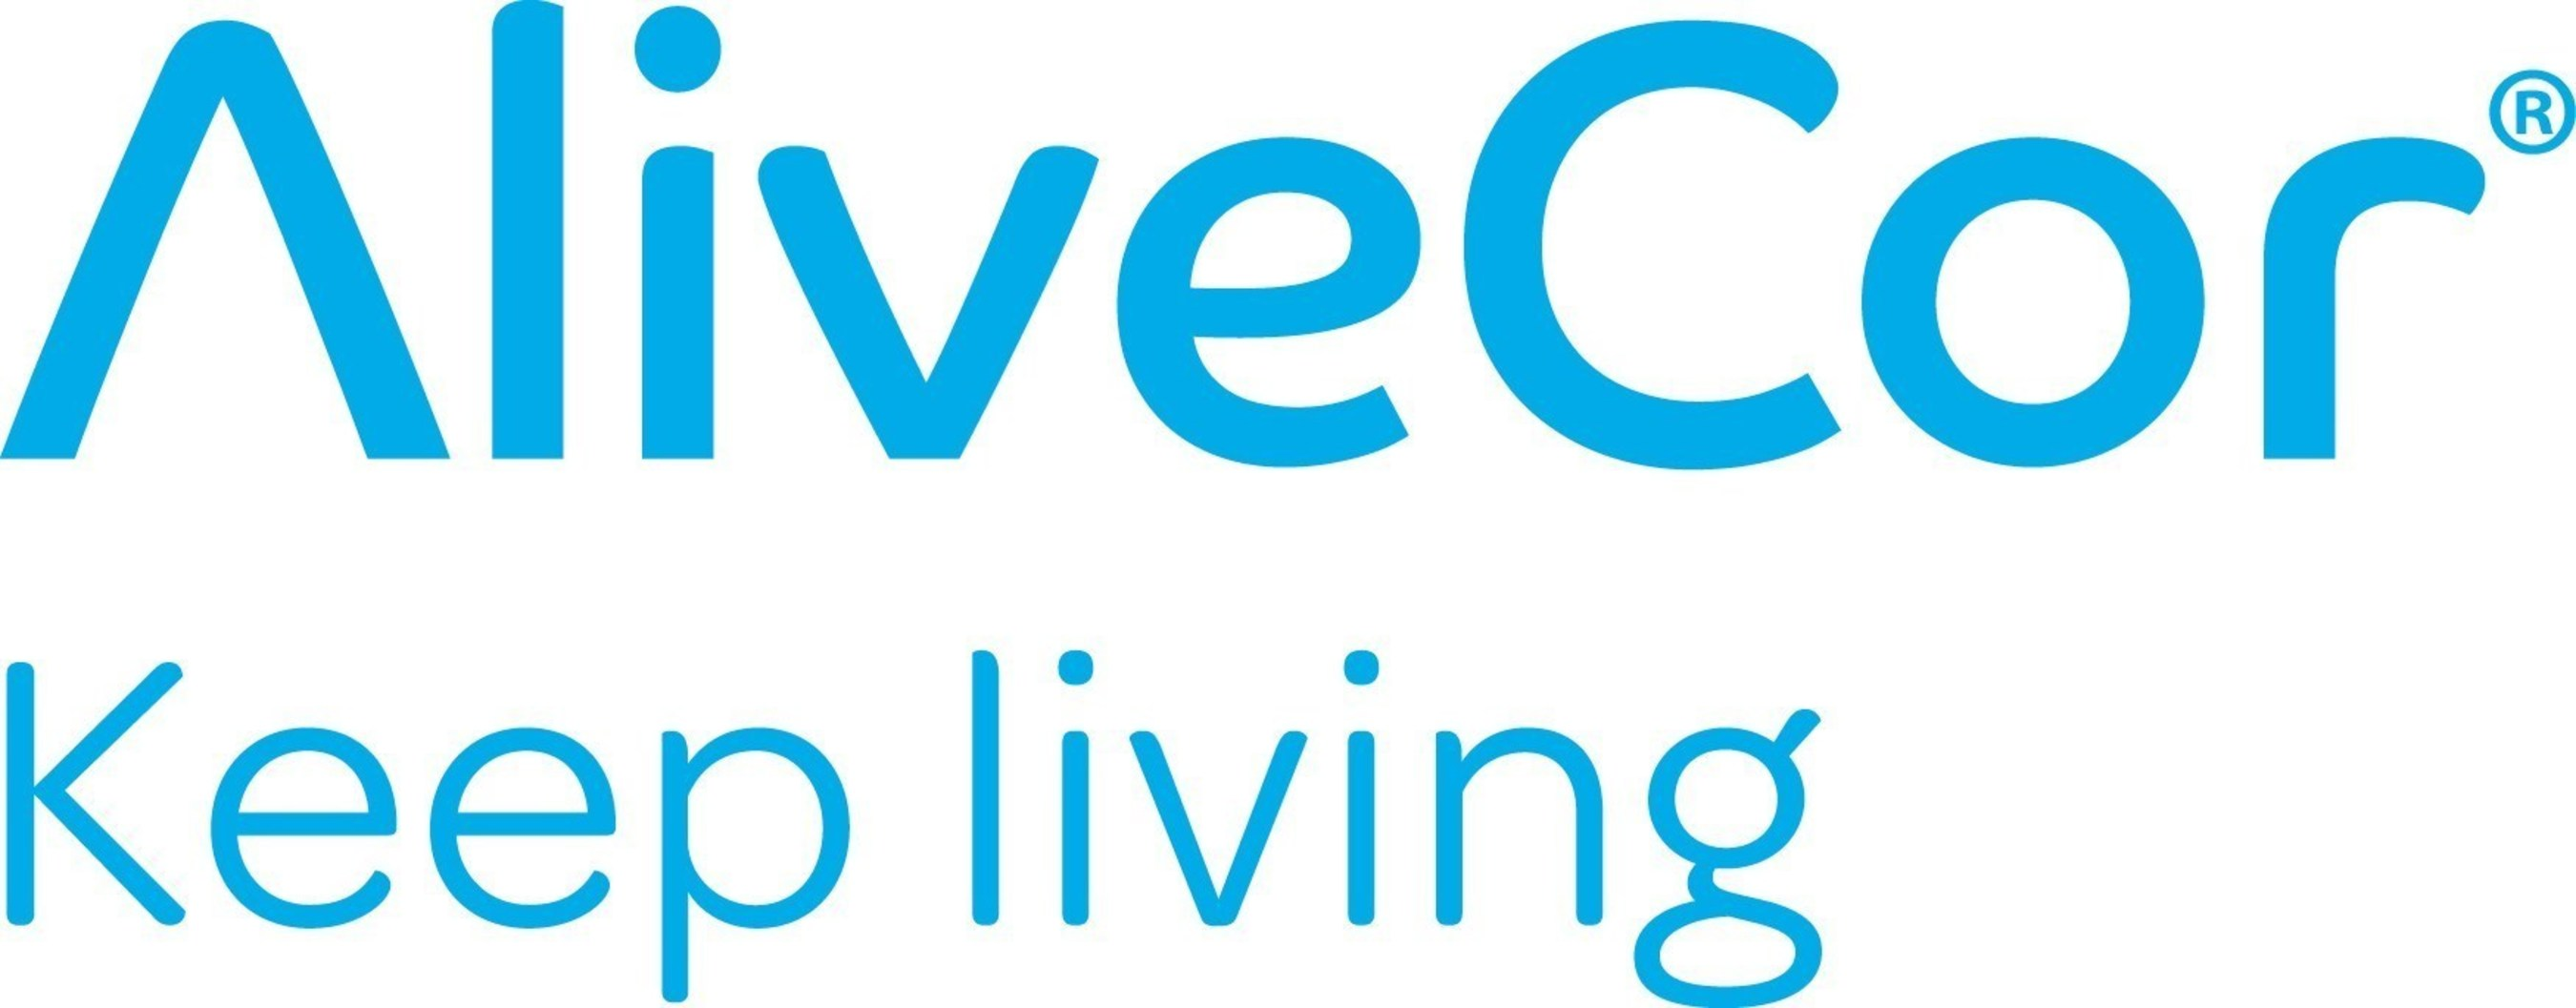 AliveCor and Mayo Clinic Announce Collaboration to Identify